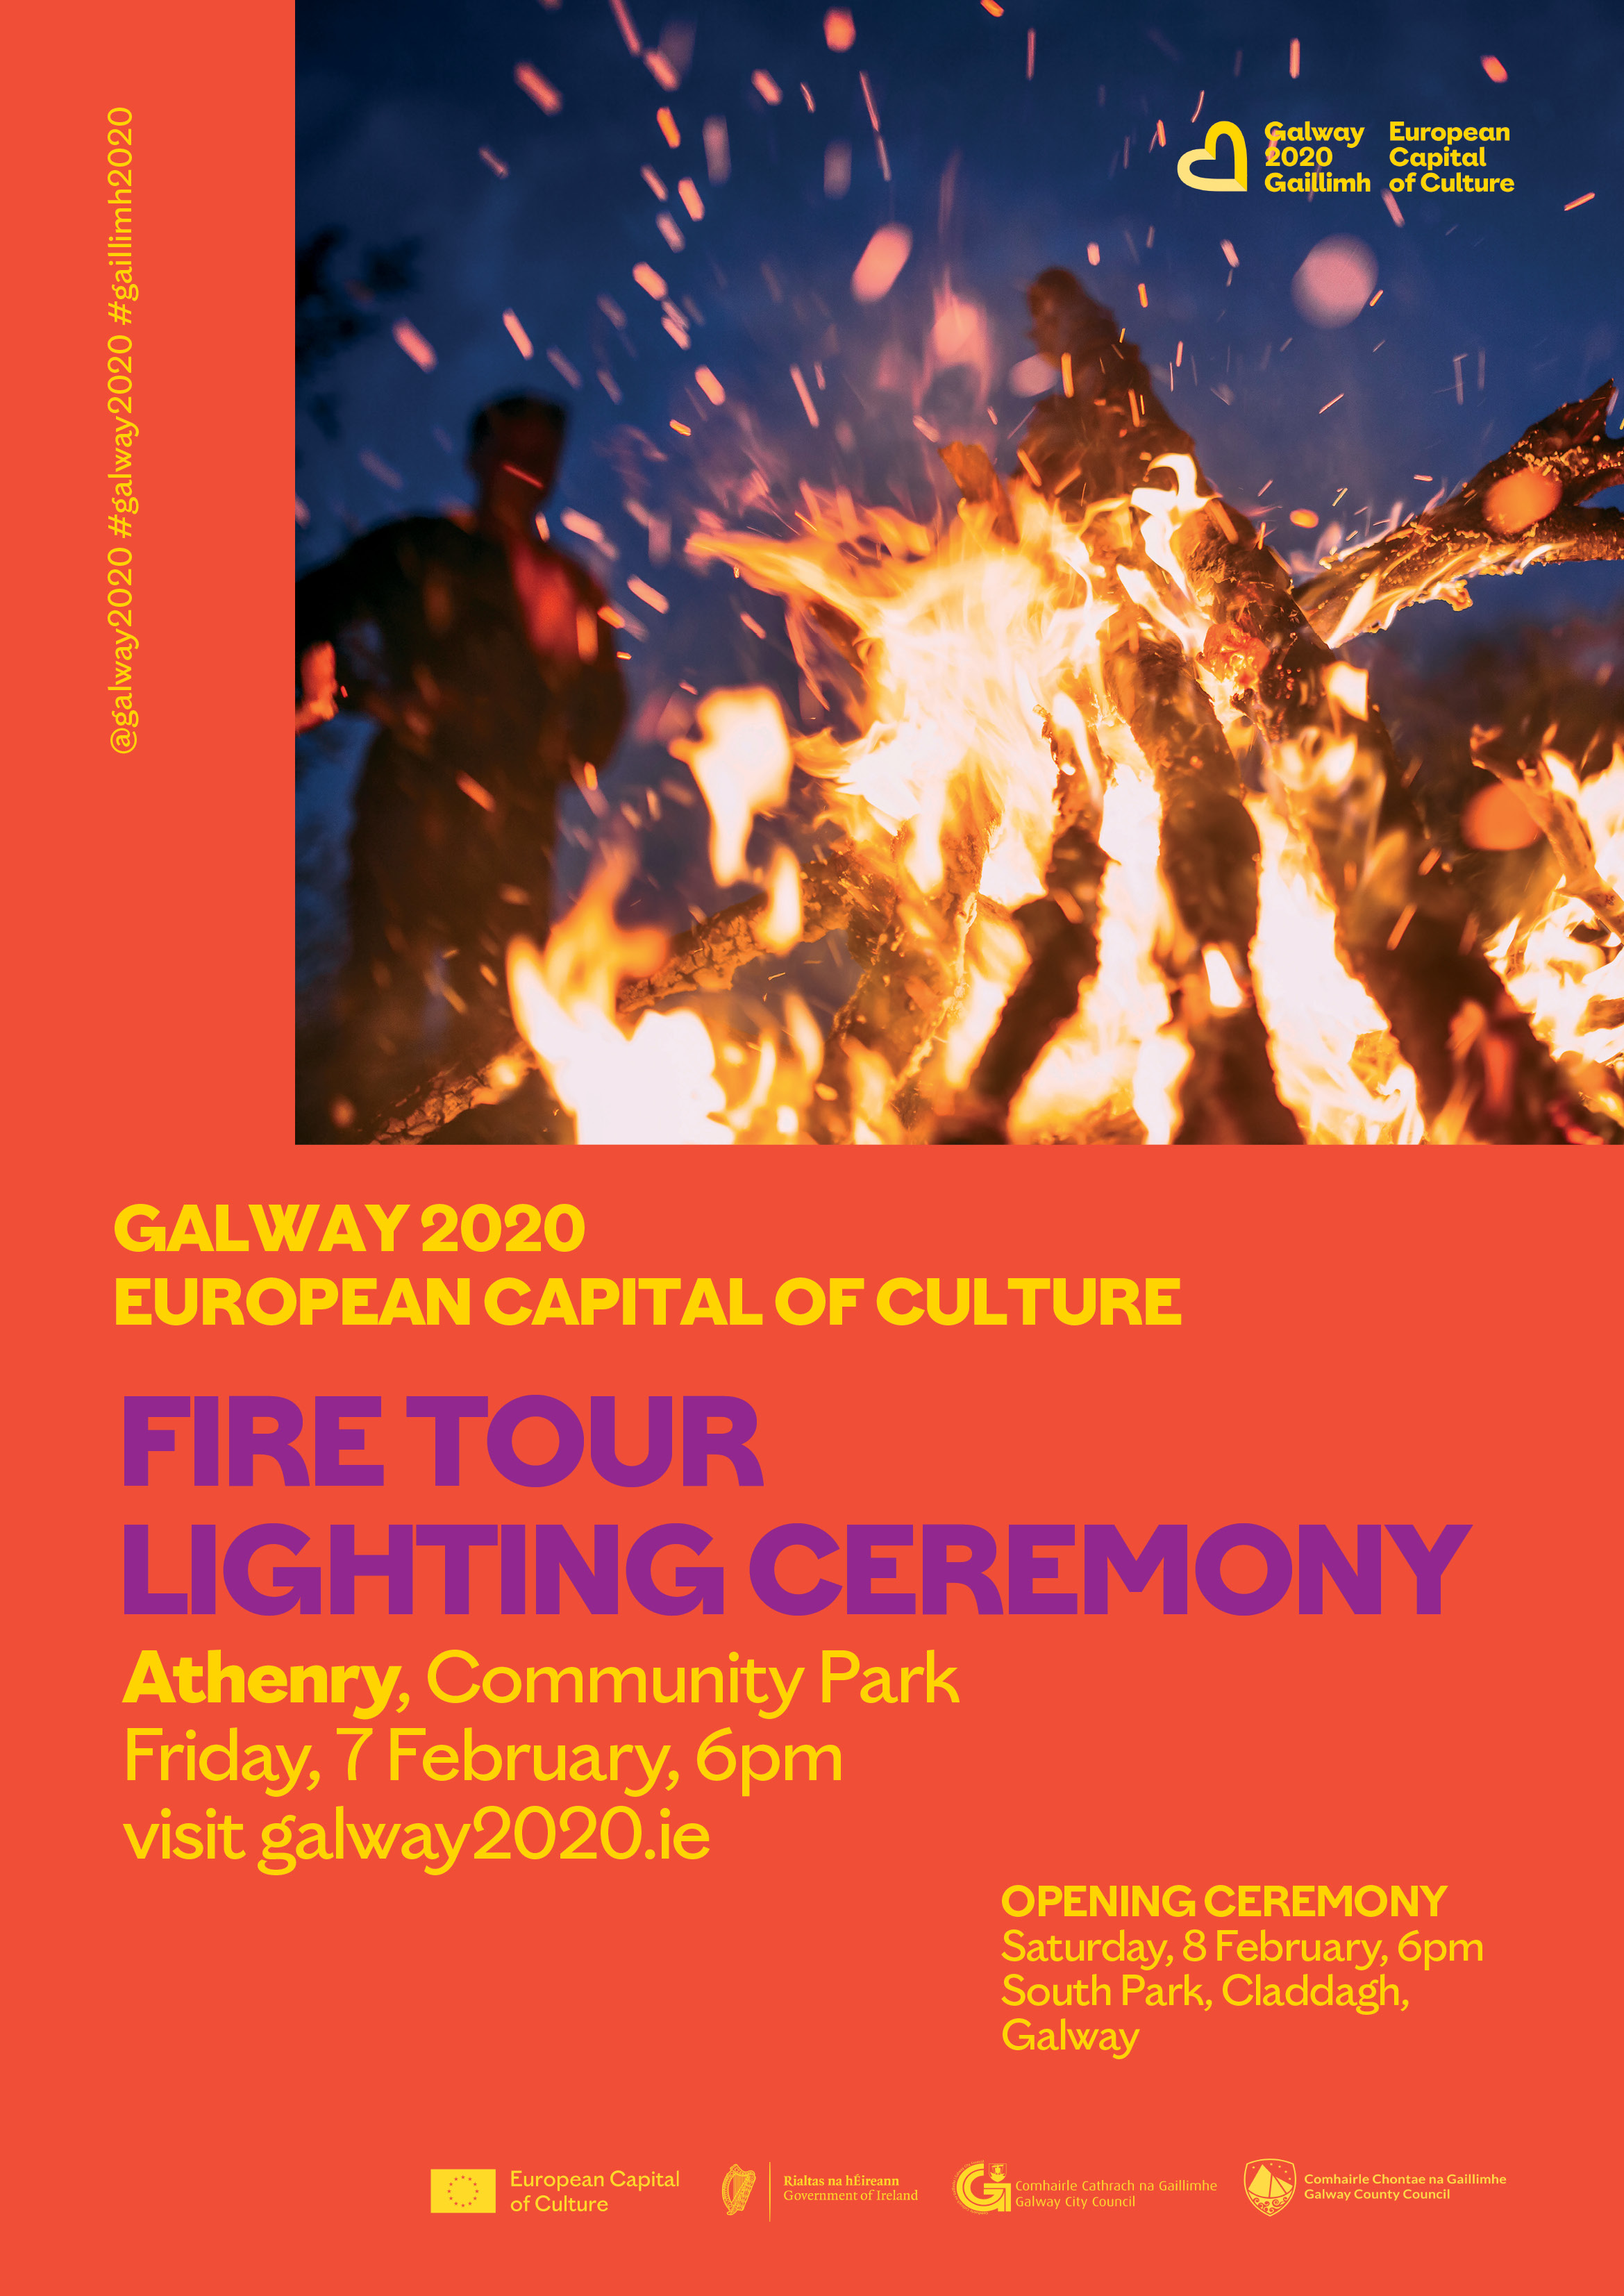 Galway 2020 Fire Lighting Ceremony Athenry Community Park 7th February at 6pm